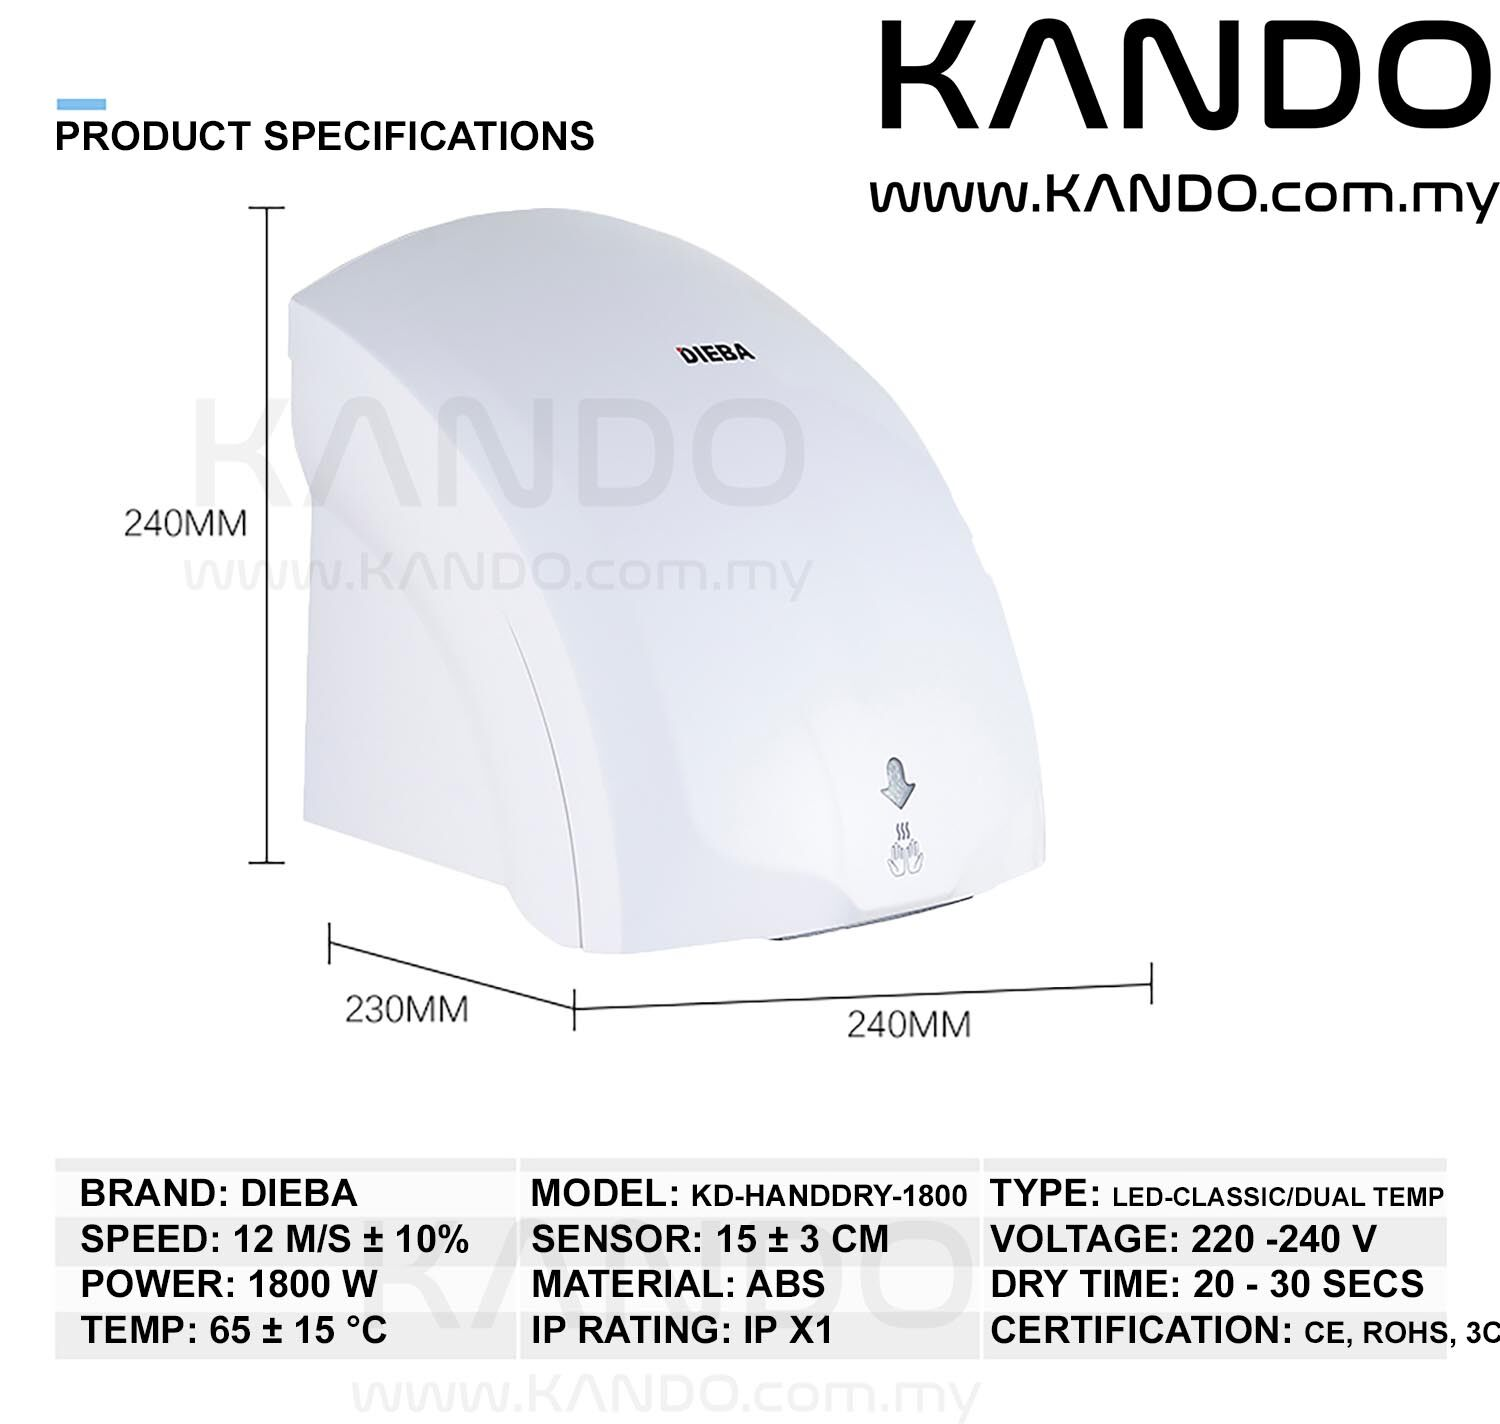 [MALAYSIA]Automatic Hand Dryer 2000W with LED Guide with Infrared Sensor Dual Temperature Air Drier Household Hand Drier LED Night Light Hand Dryer with LED Night Light Guide for Bathroom Kitchen Cinema Dark Environment LED Guide